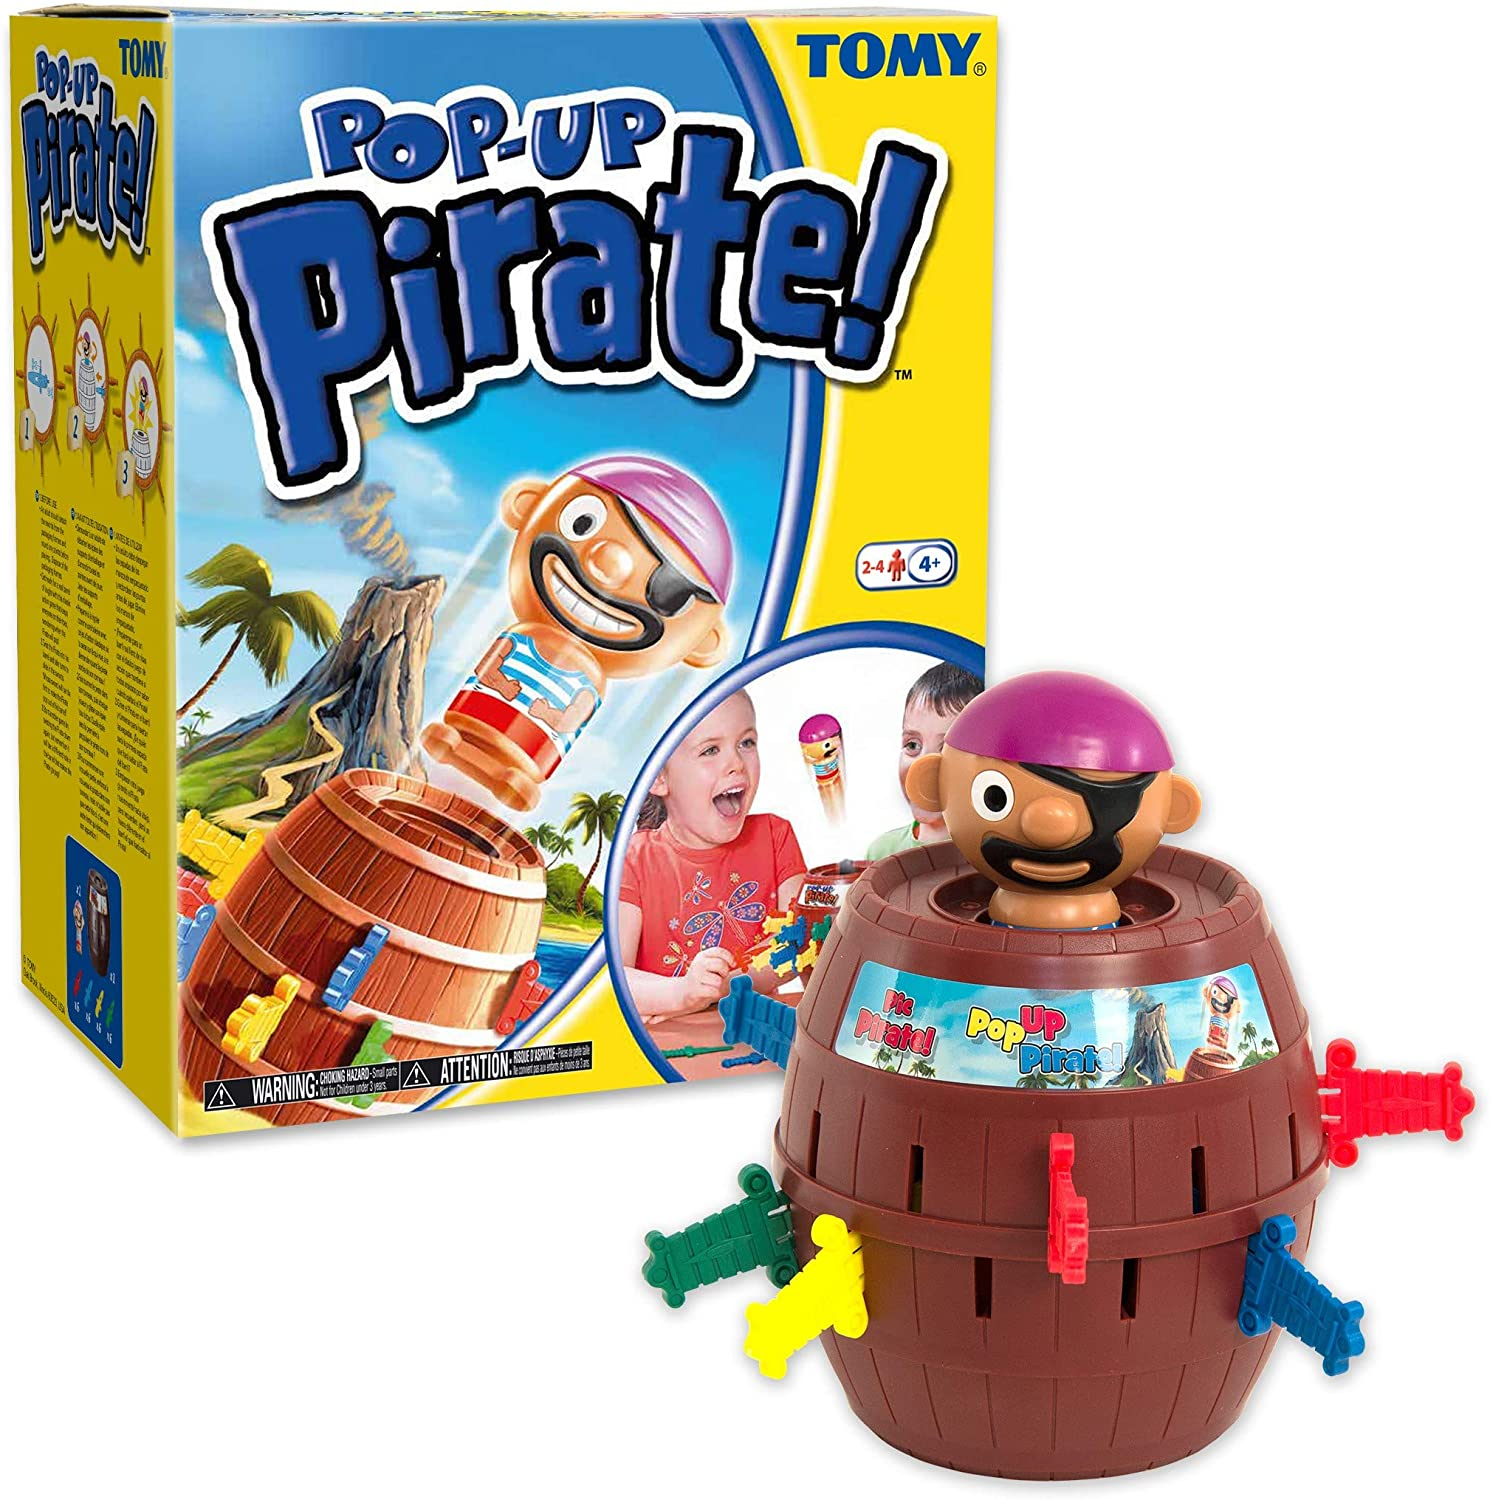 TOMY Pop Up Pirate Classic Children's Action Board Game